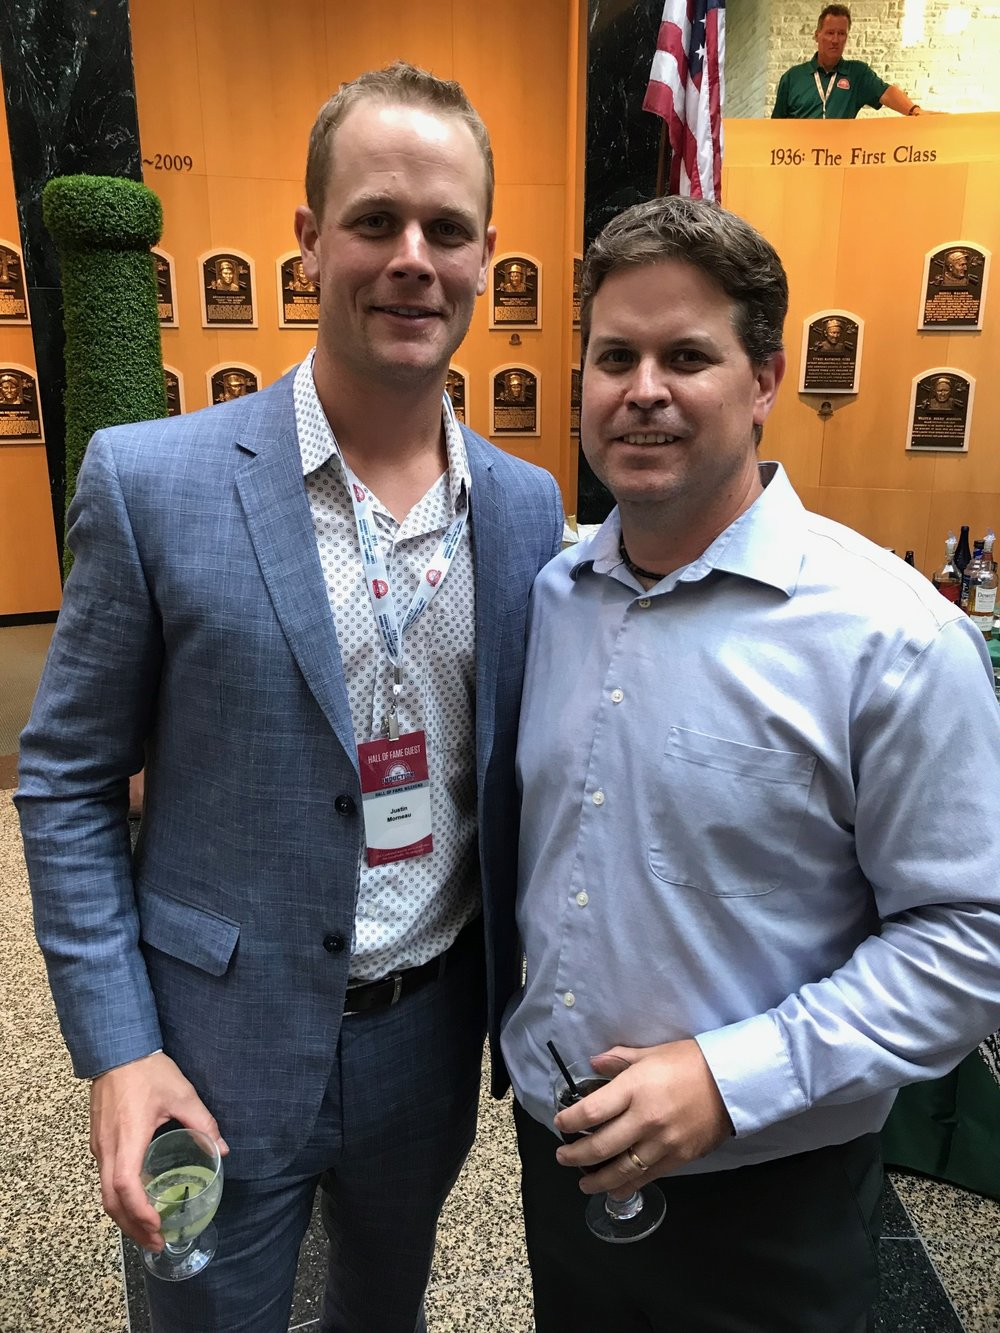 Scott Crawford, the Canadian Baseball Hall of Fame's director of operations,(right) ran into Canadian baseball great Justin Morneau (New Westminster, B.C.) in Cooperstown on Saturday. Photo Credit: Scott Crawford